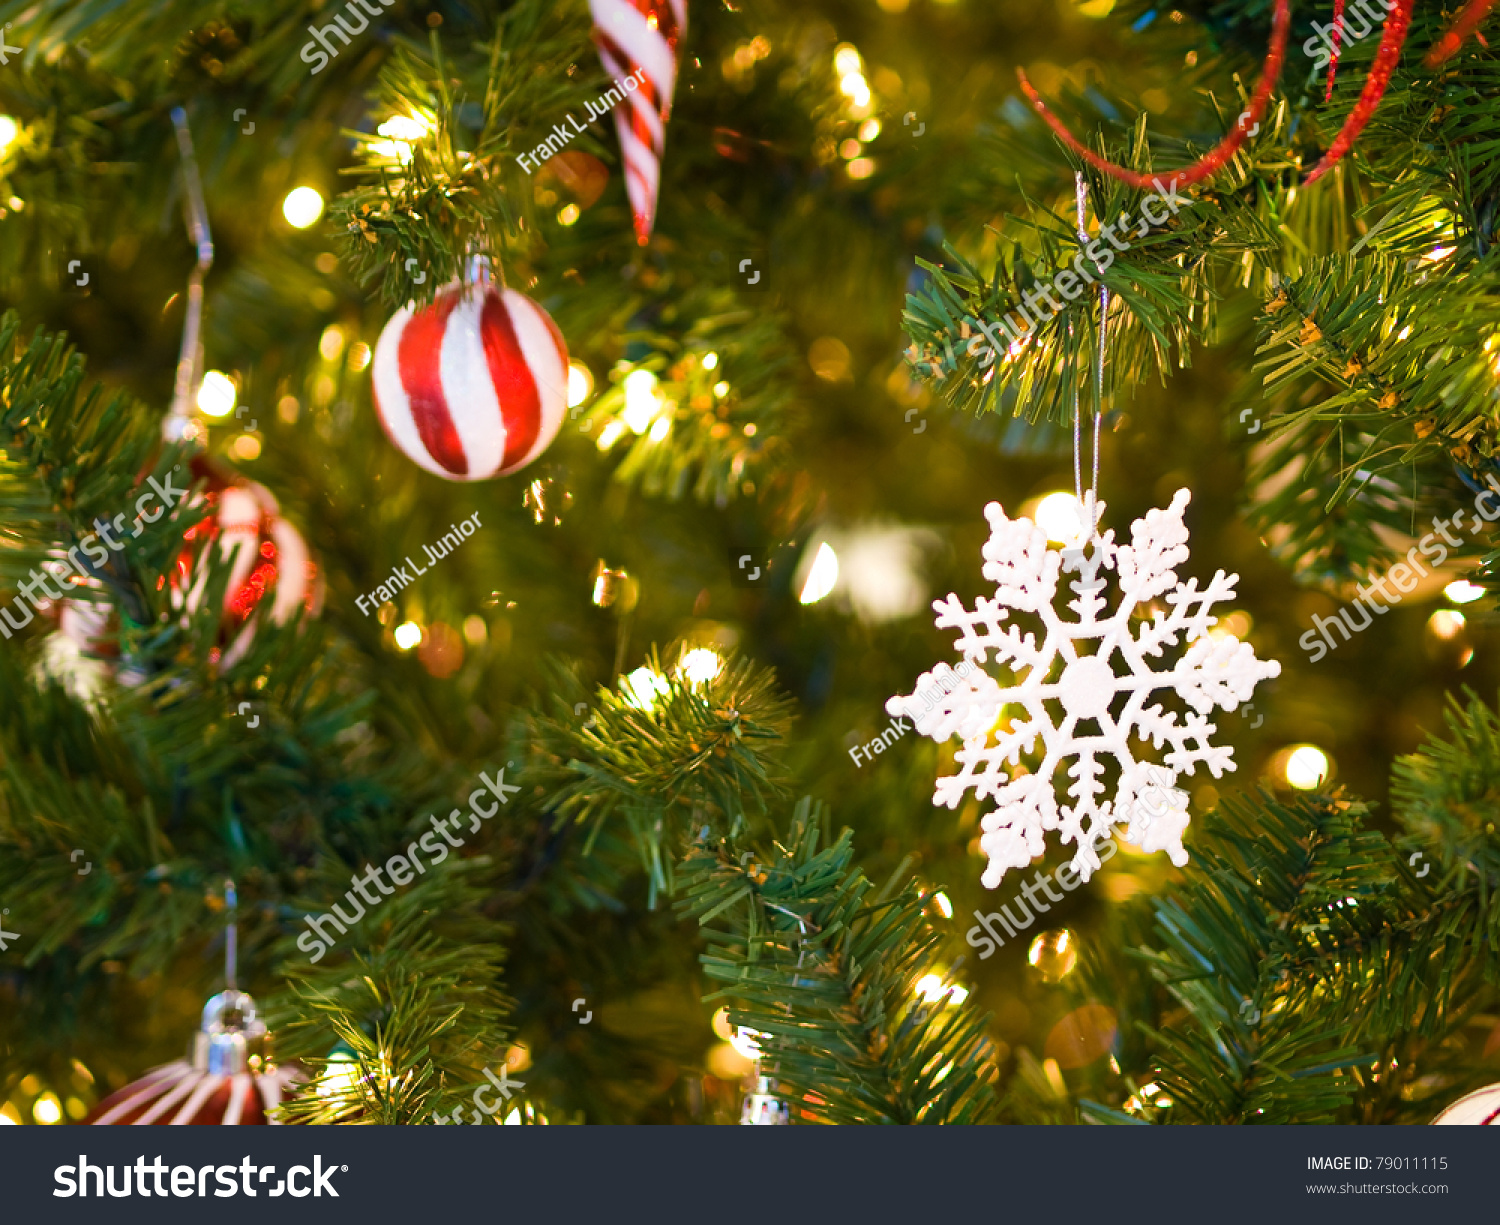 Red And White Christmas Ornaments On A Green Tree With